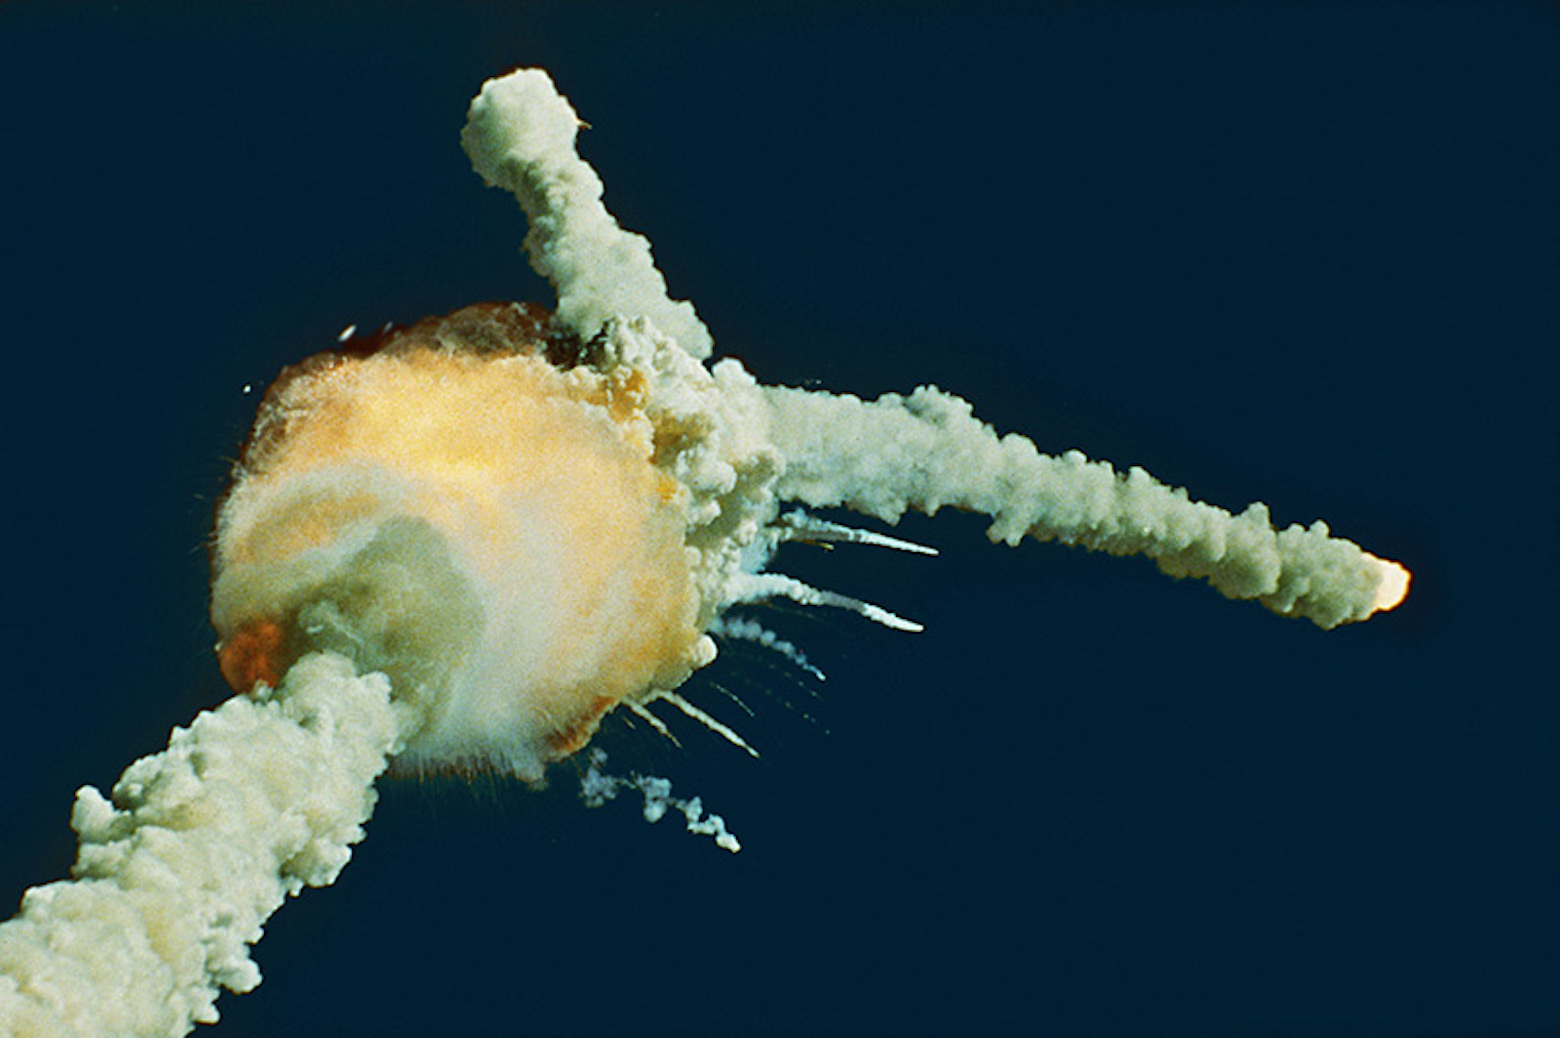 The explosion of the space shuttle, Challenger, in 1986/